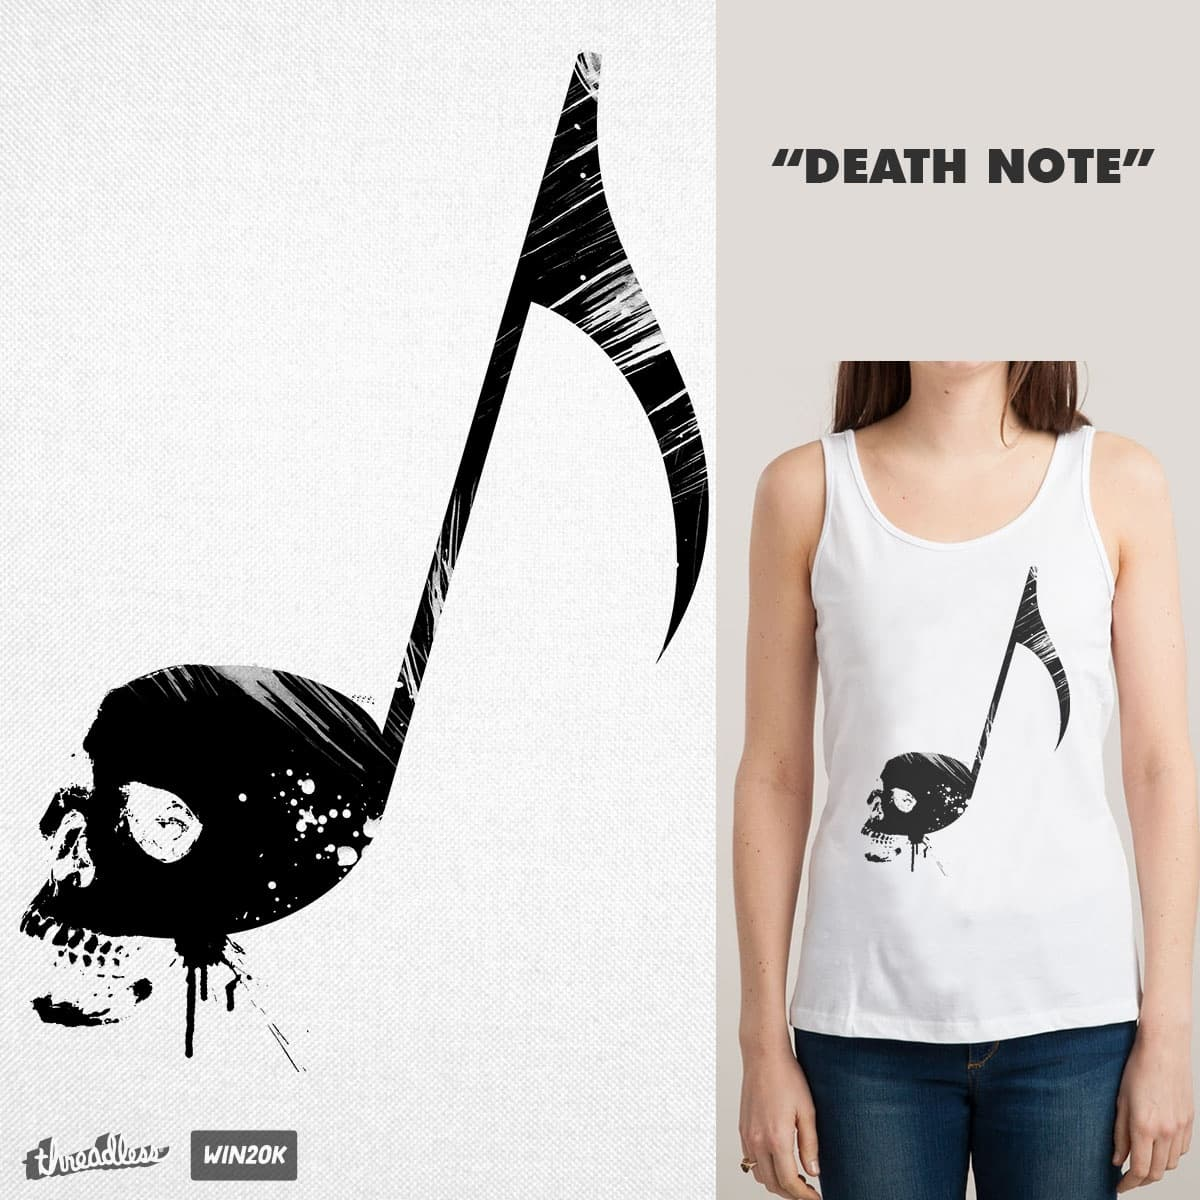 Death Note by Agimat ni Ingkong on Threadless